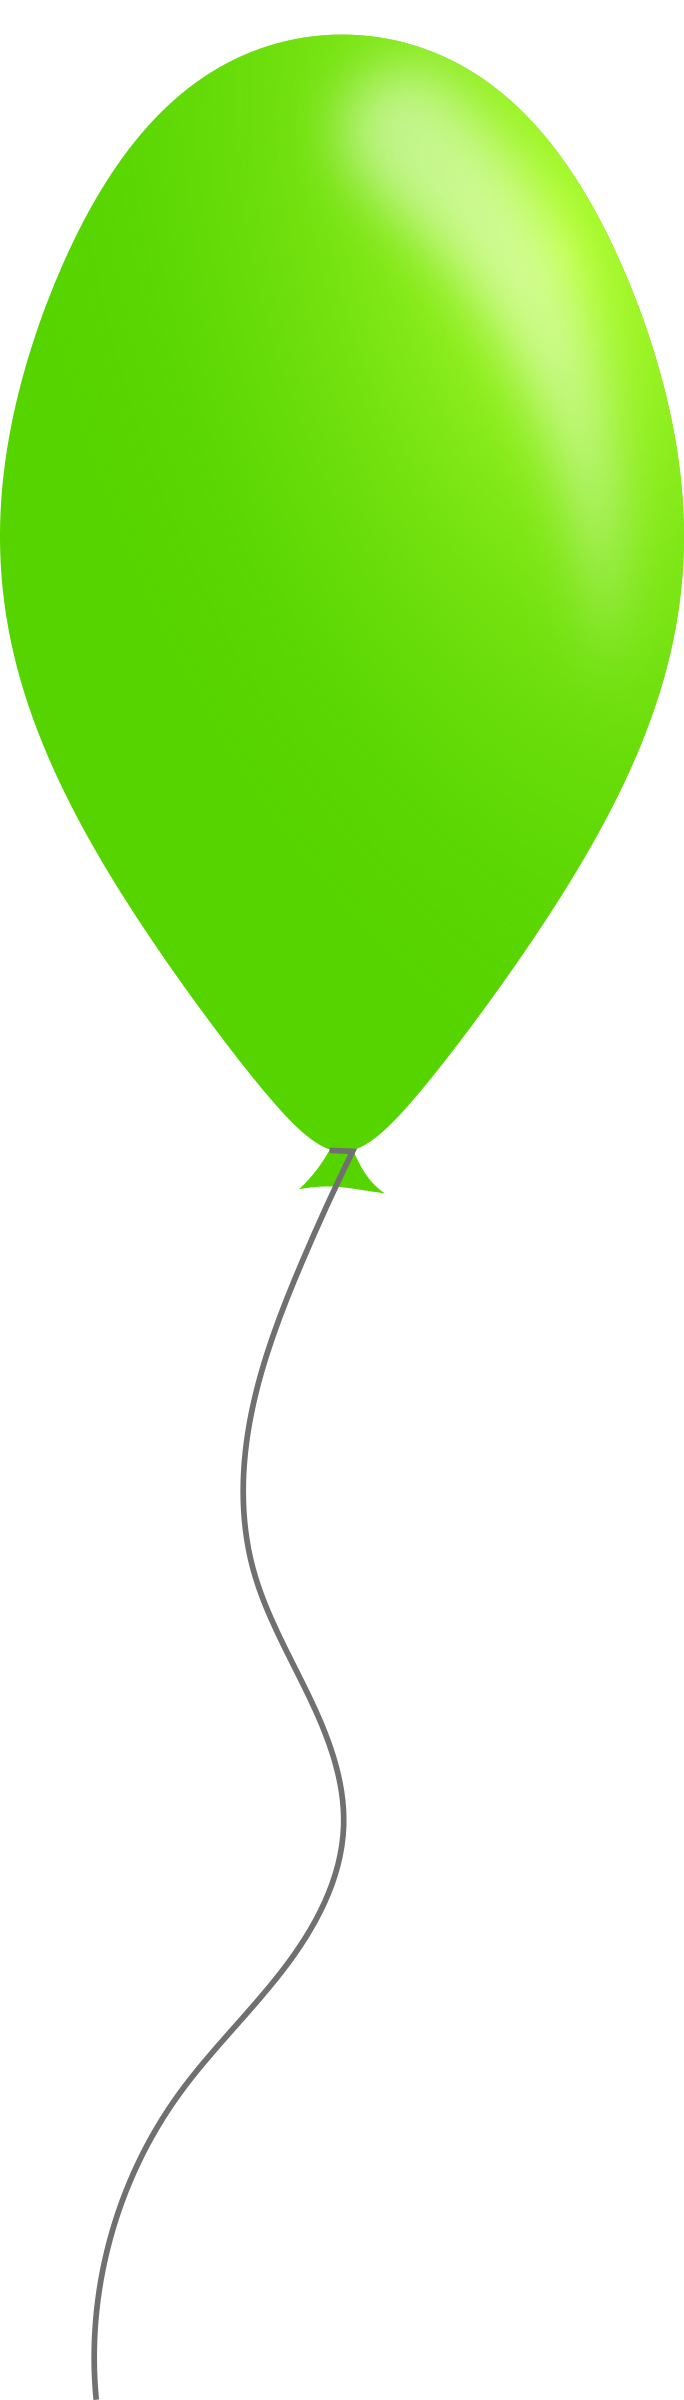 graphic freeuse stock Big image png. Green balloon clipart